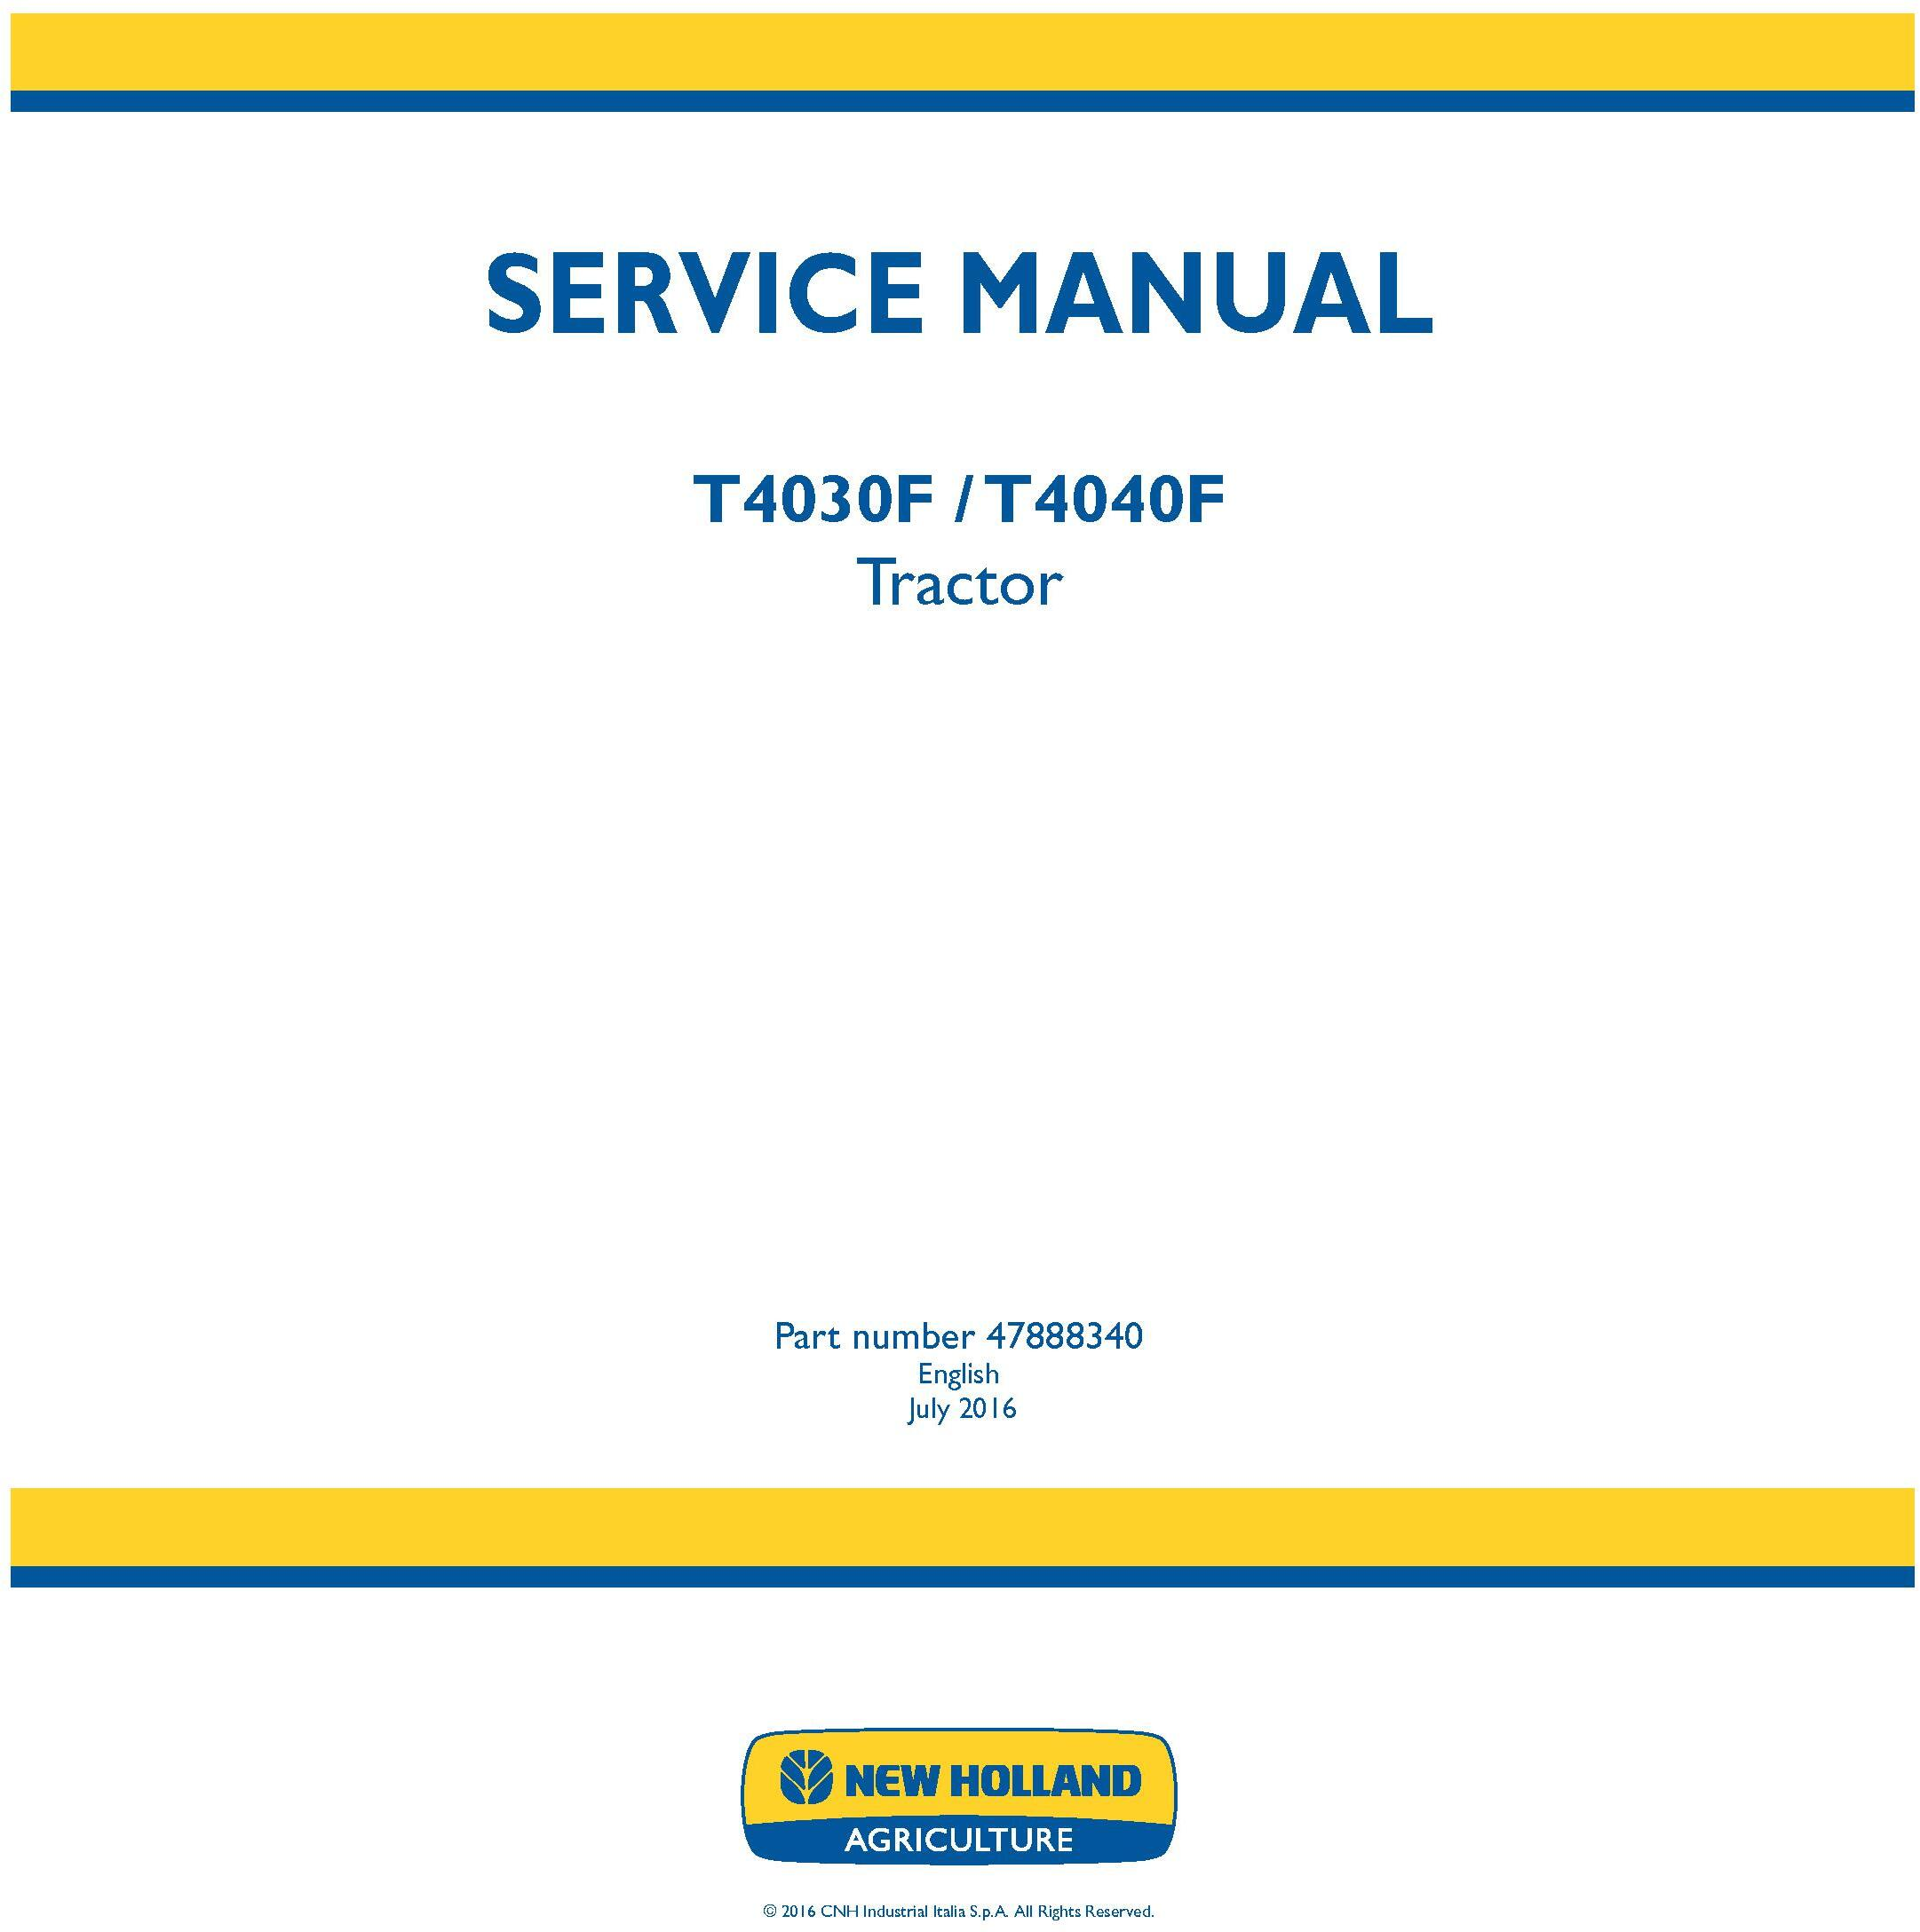 New Holland T4030F, T4040F Tractor Service Manual (Latin America) - 19433